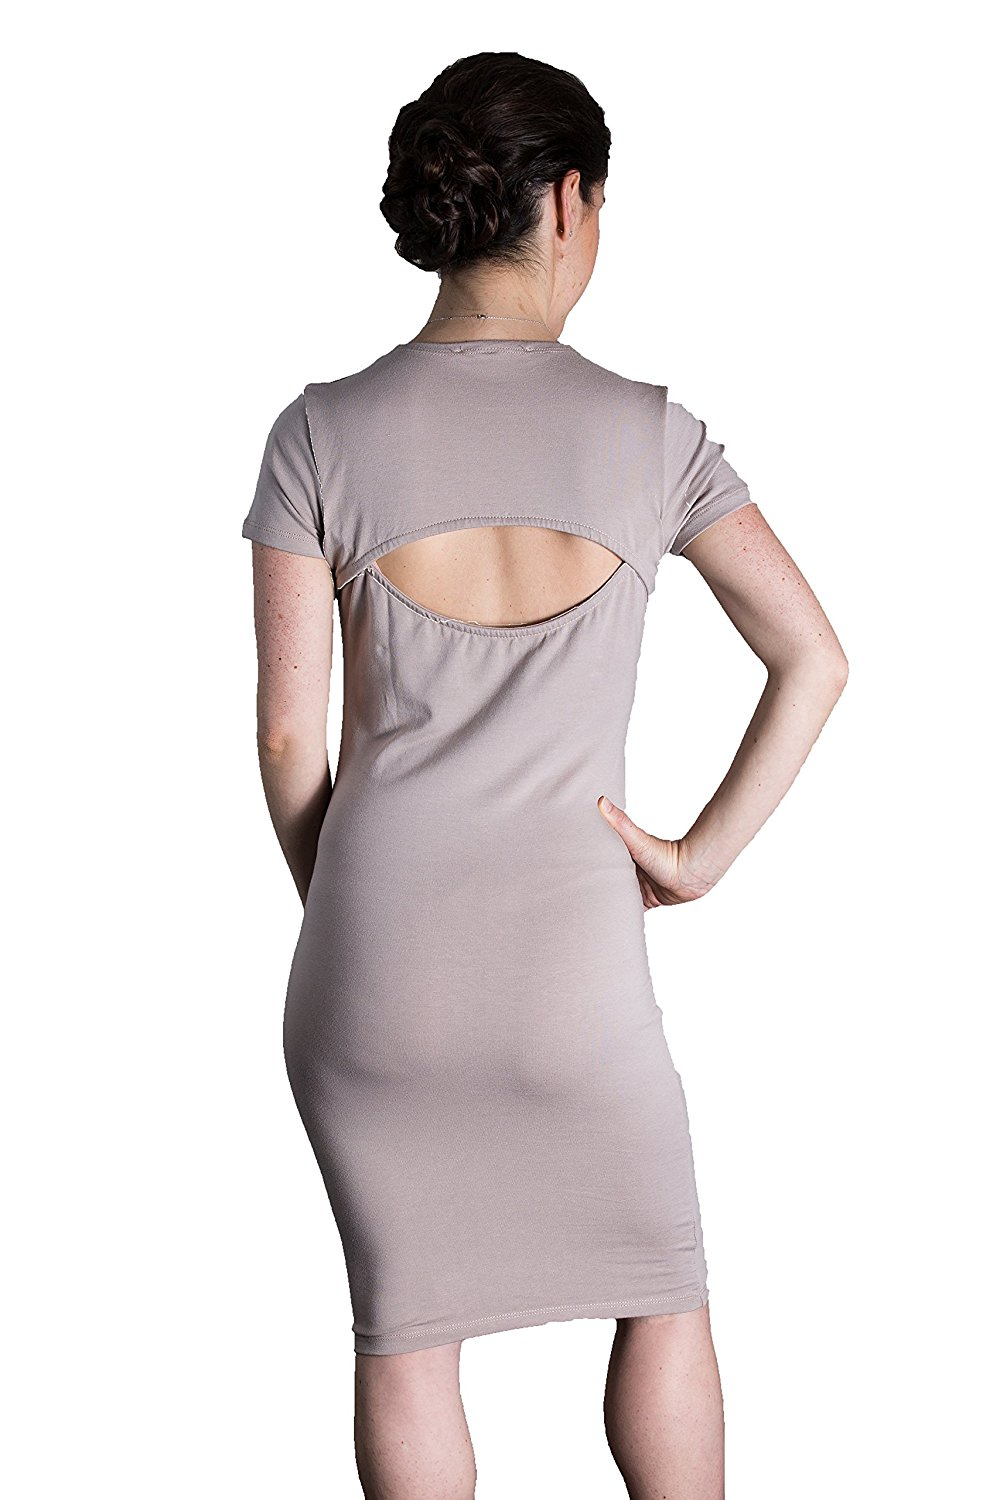 Matron Saint Women's The Rebel Open Back Dress for Maternity and Beyond at Amazon Women's Clothing store: